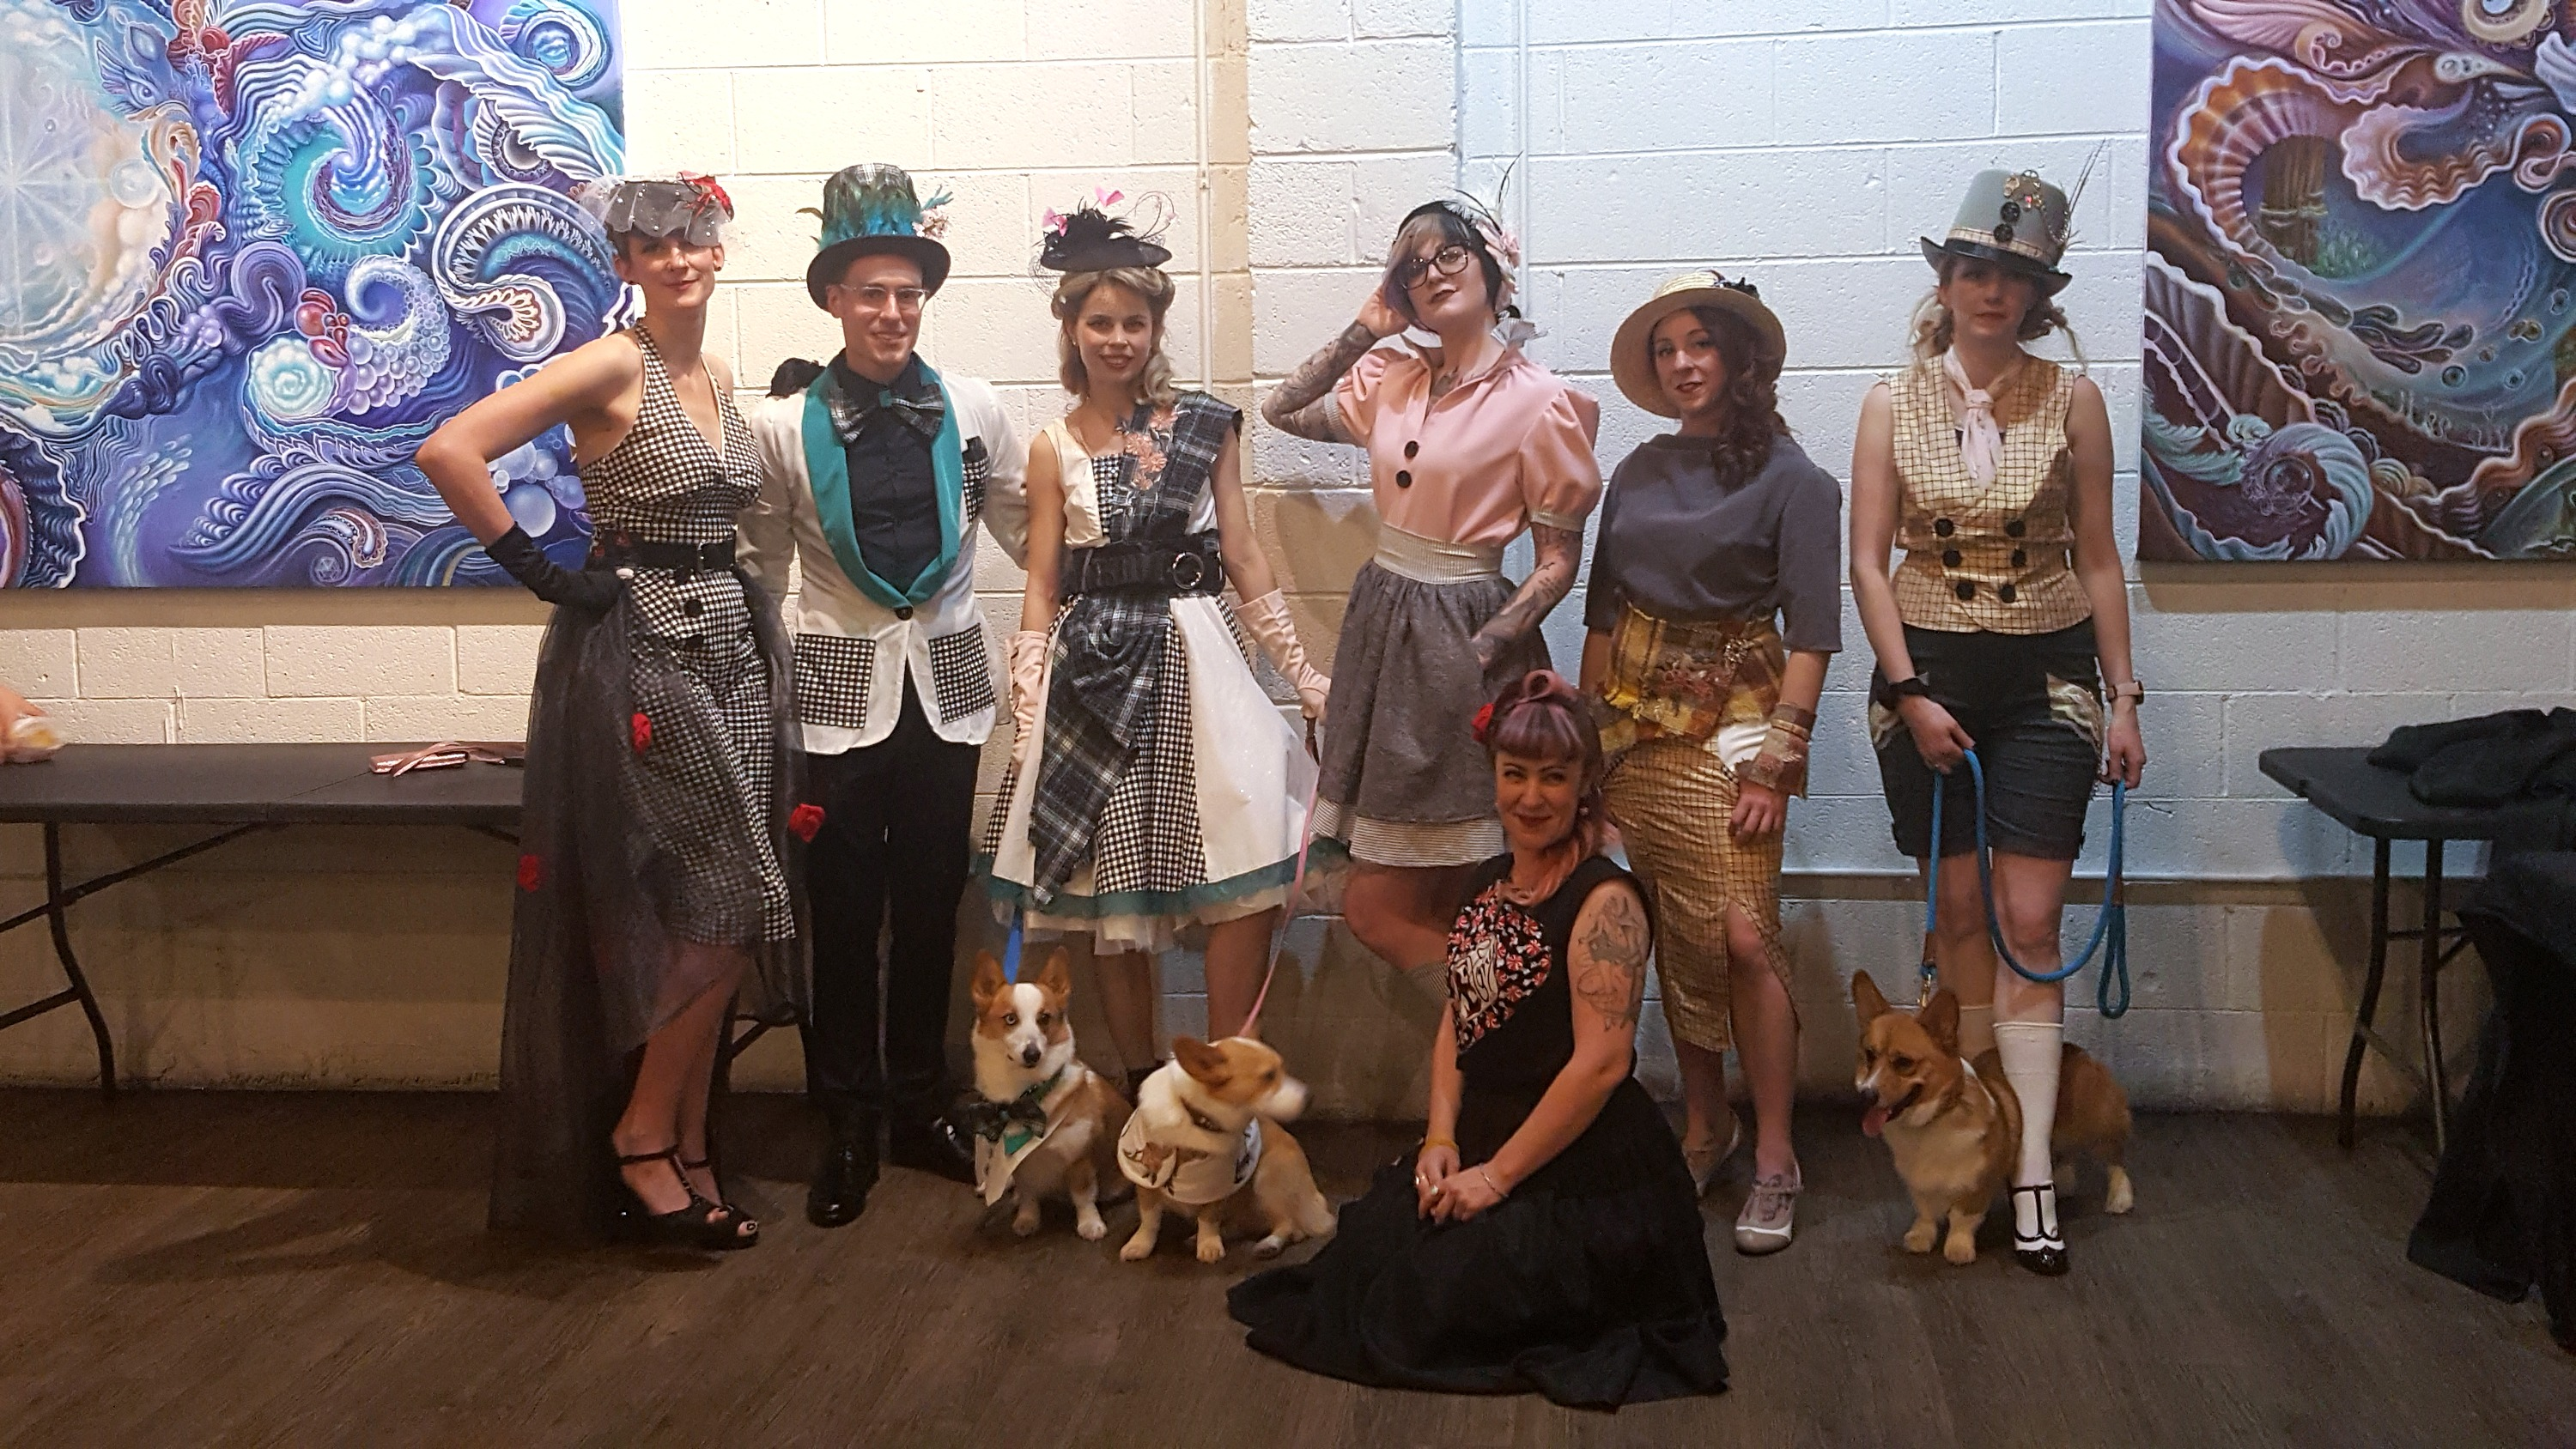 Corgis & Friends take over fashion